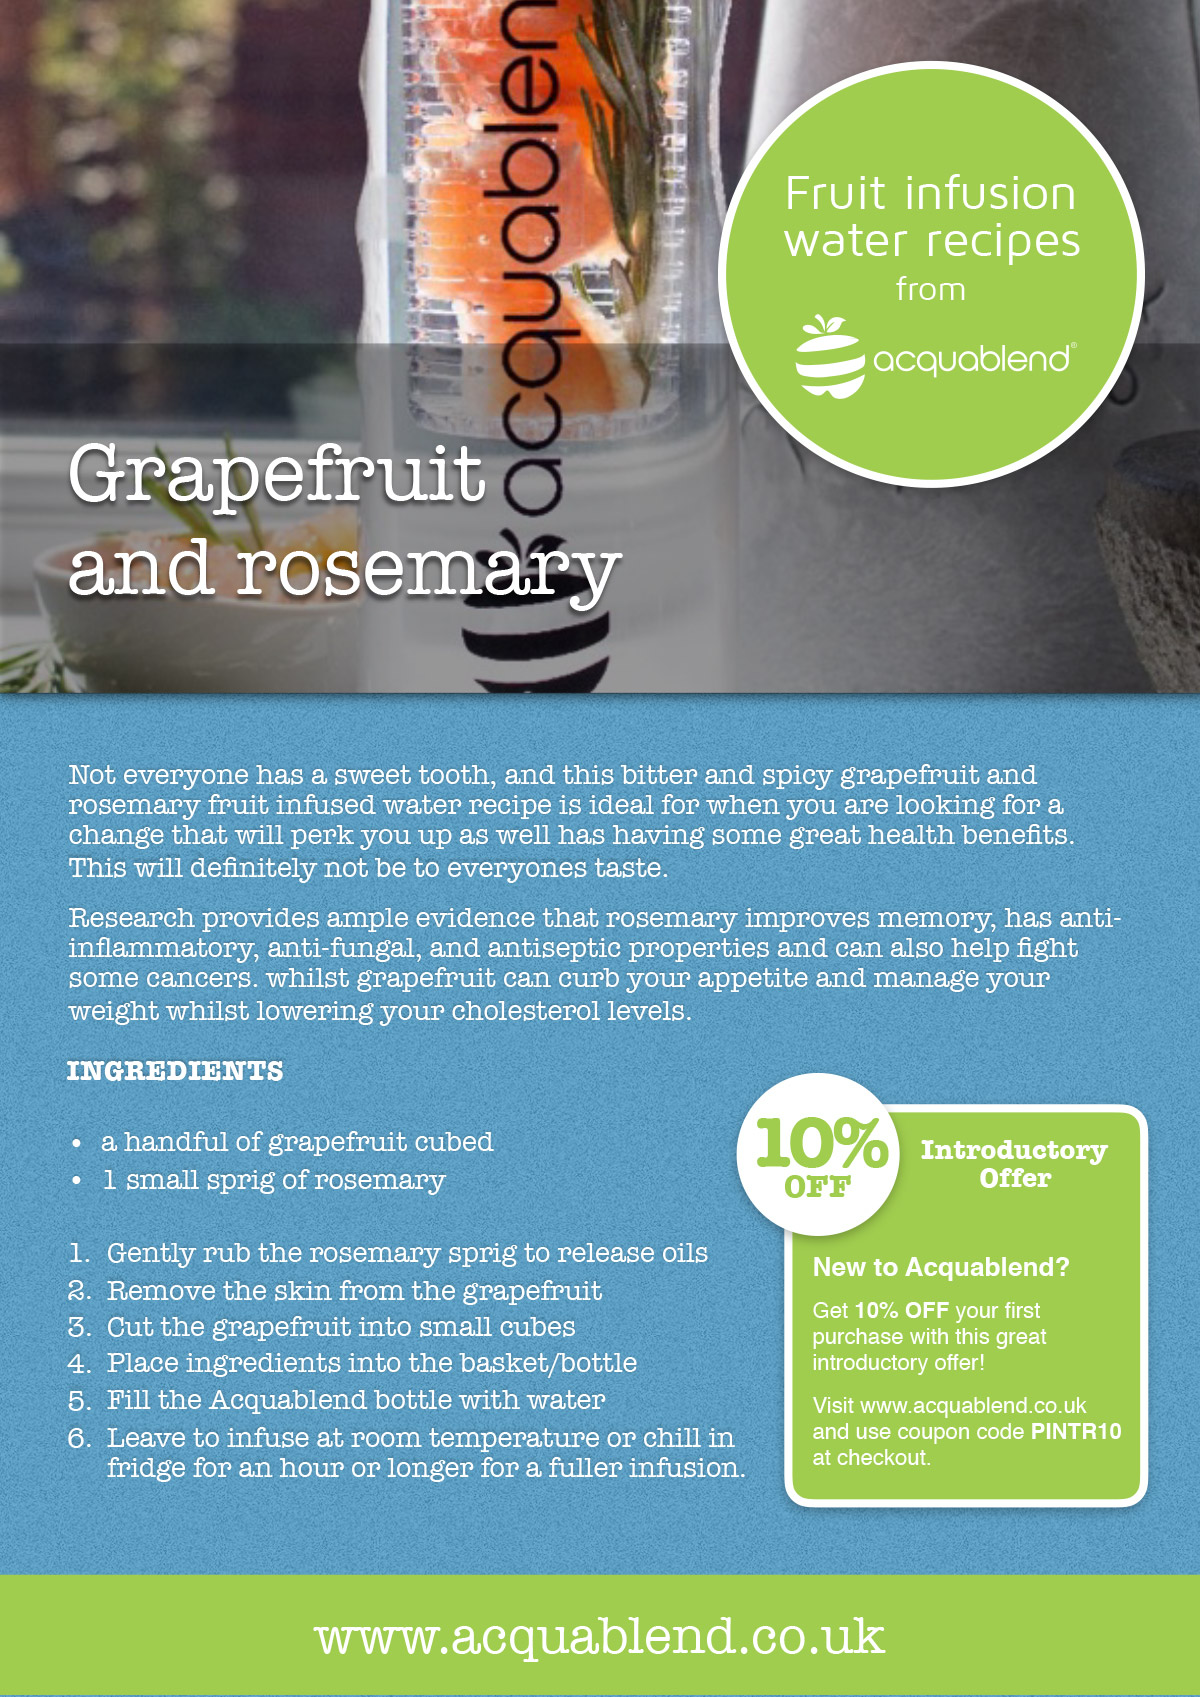 Grapefruit and rosemary fruit infused water recipe.